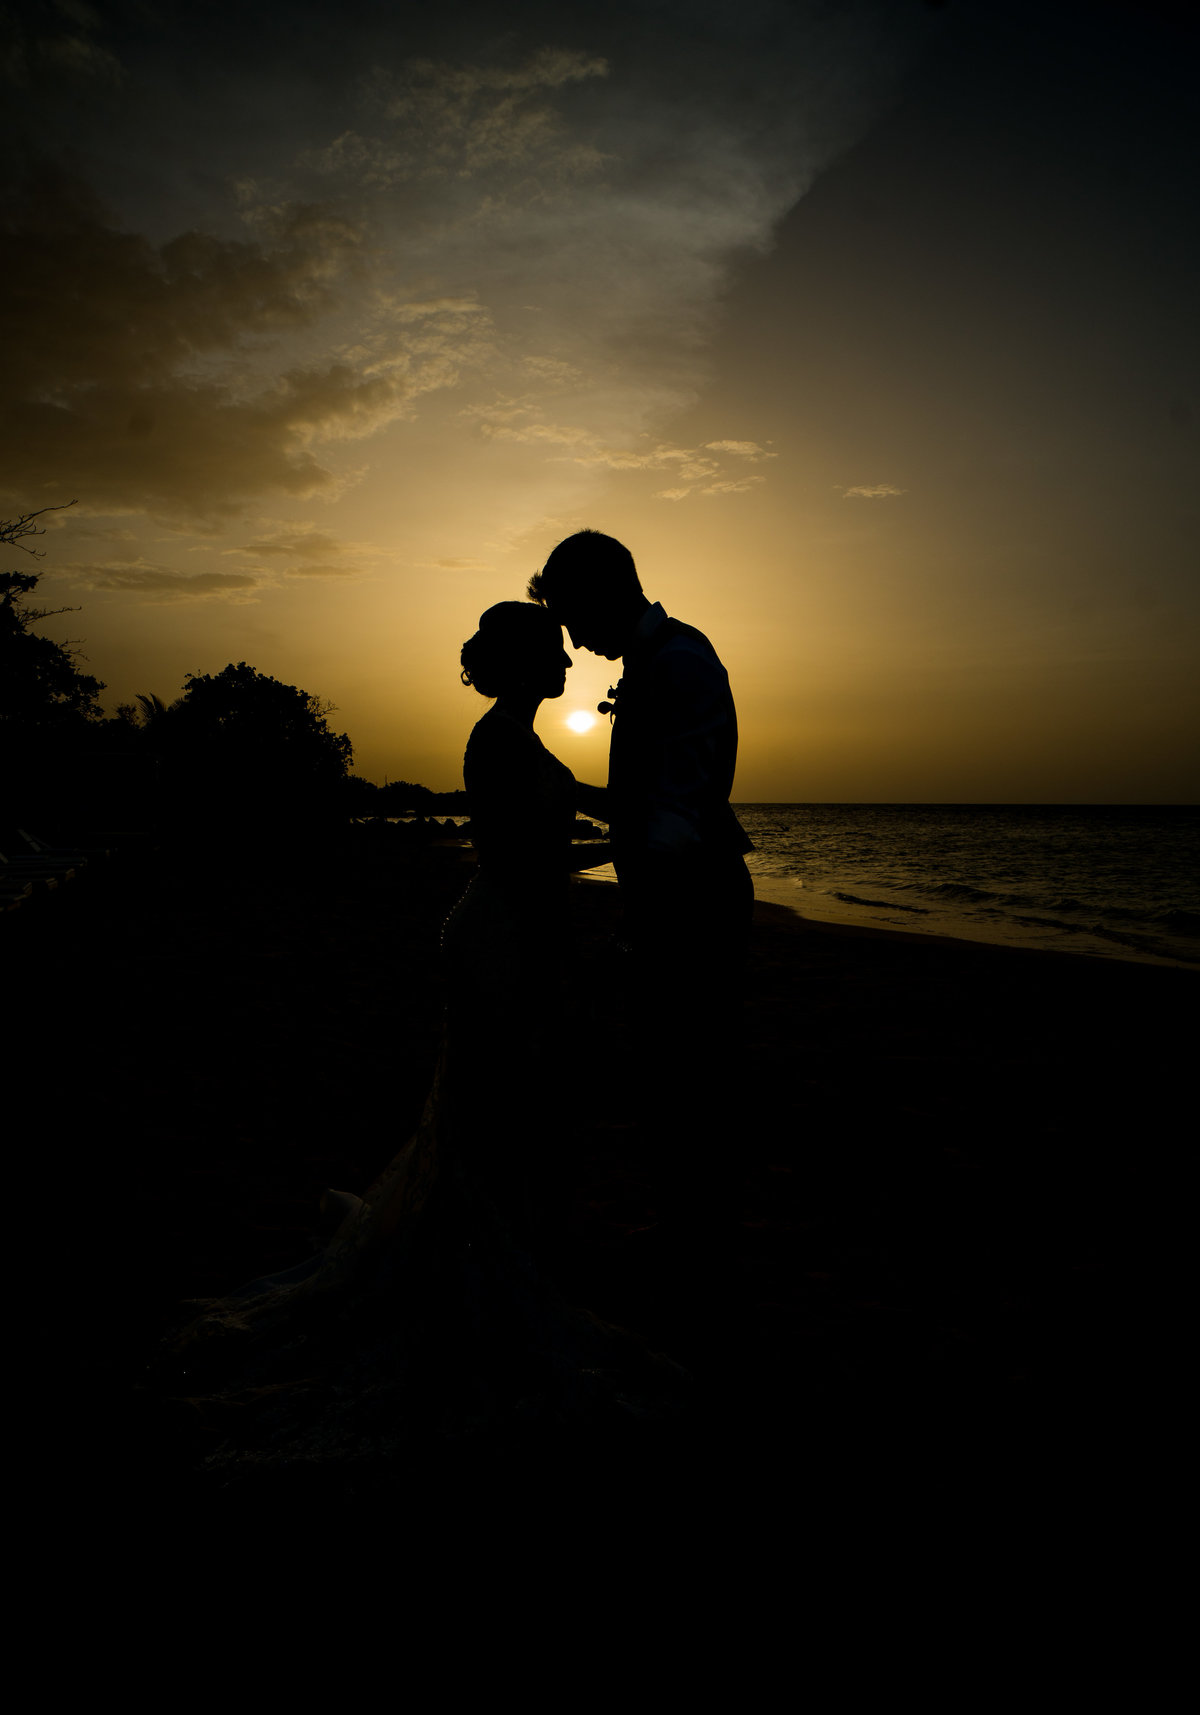 jamaica wedding, 405 brides, sunset wedding, destination photographer